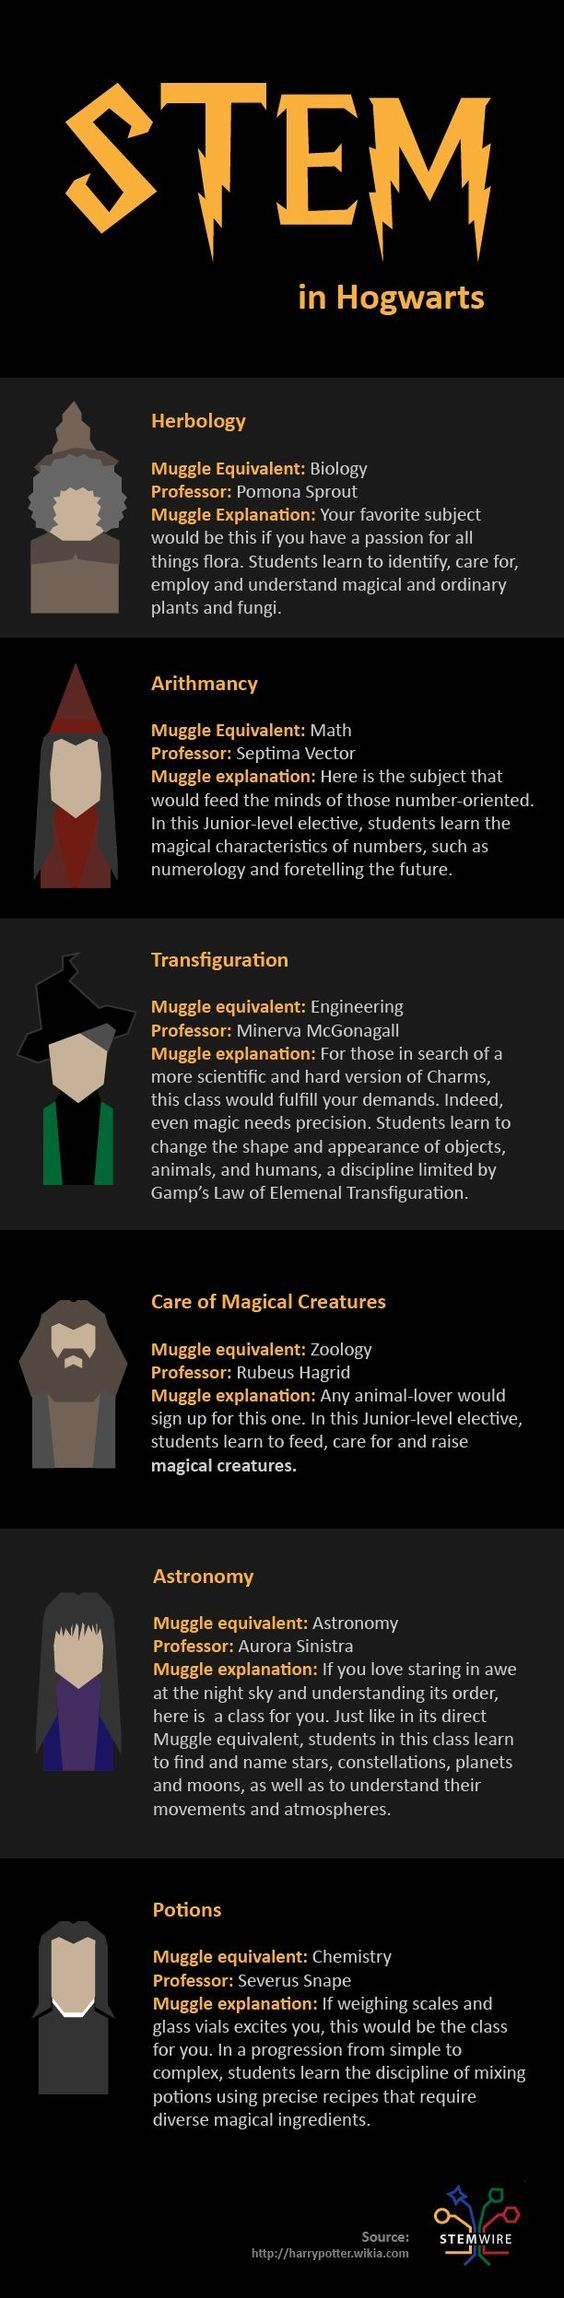 hogwarts steam